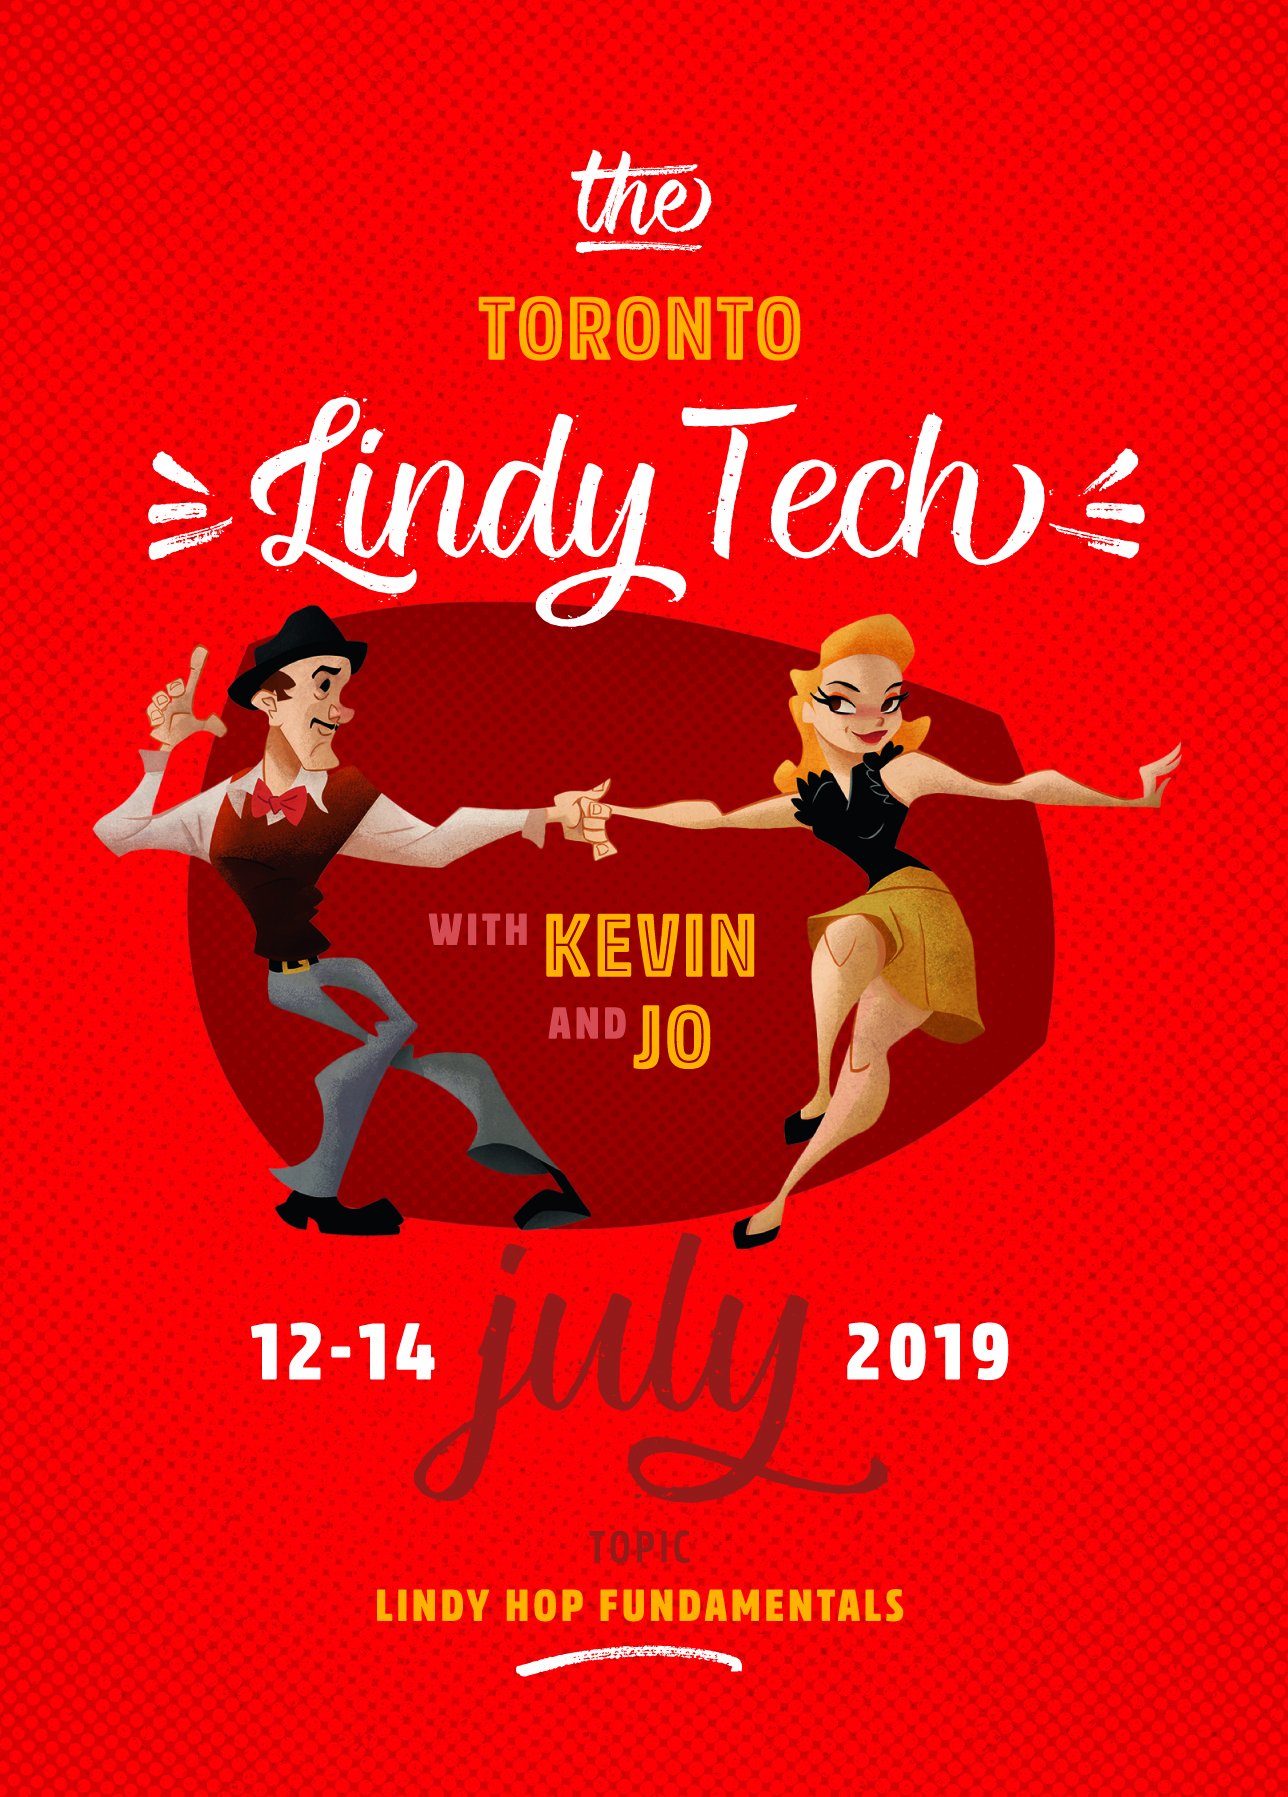 Toronto Lindy Tech